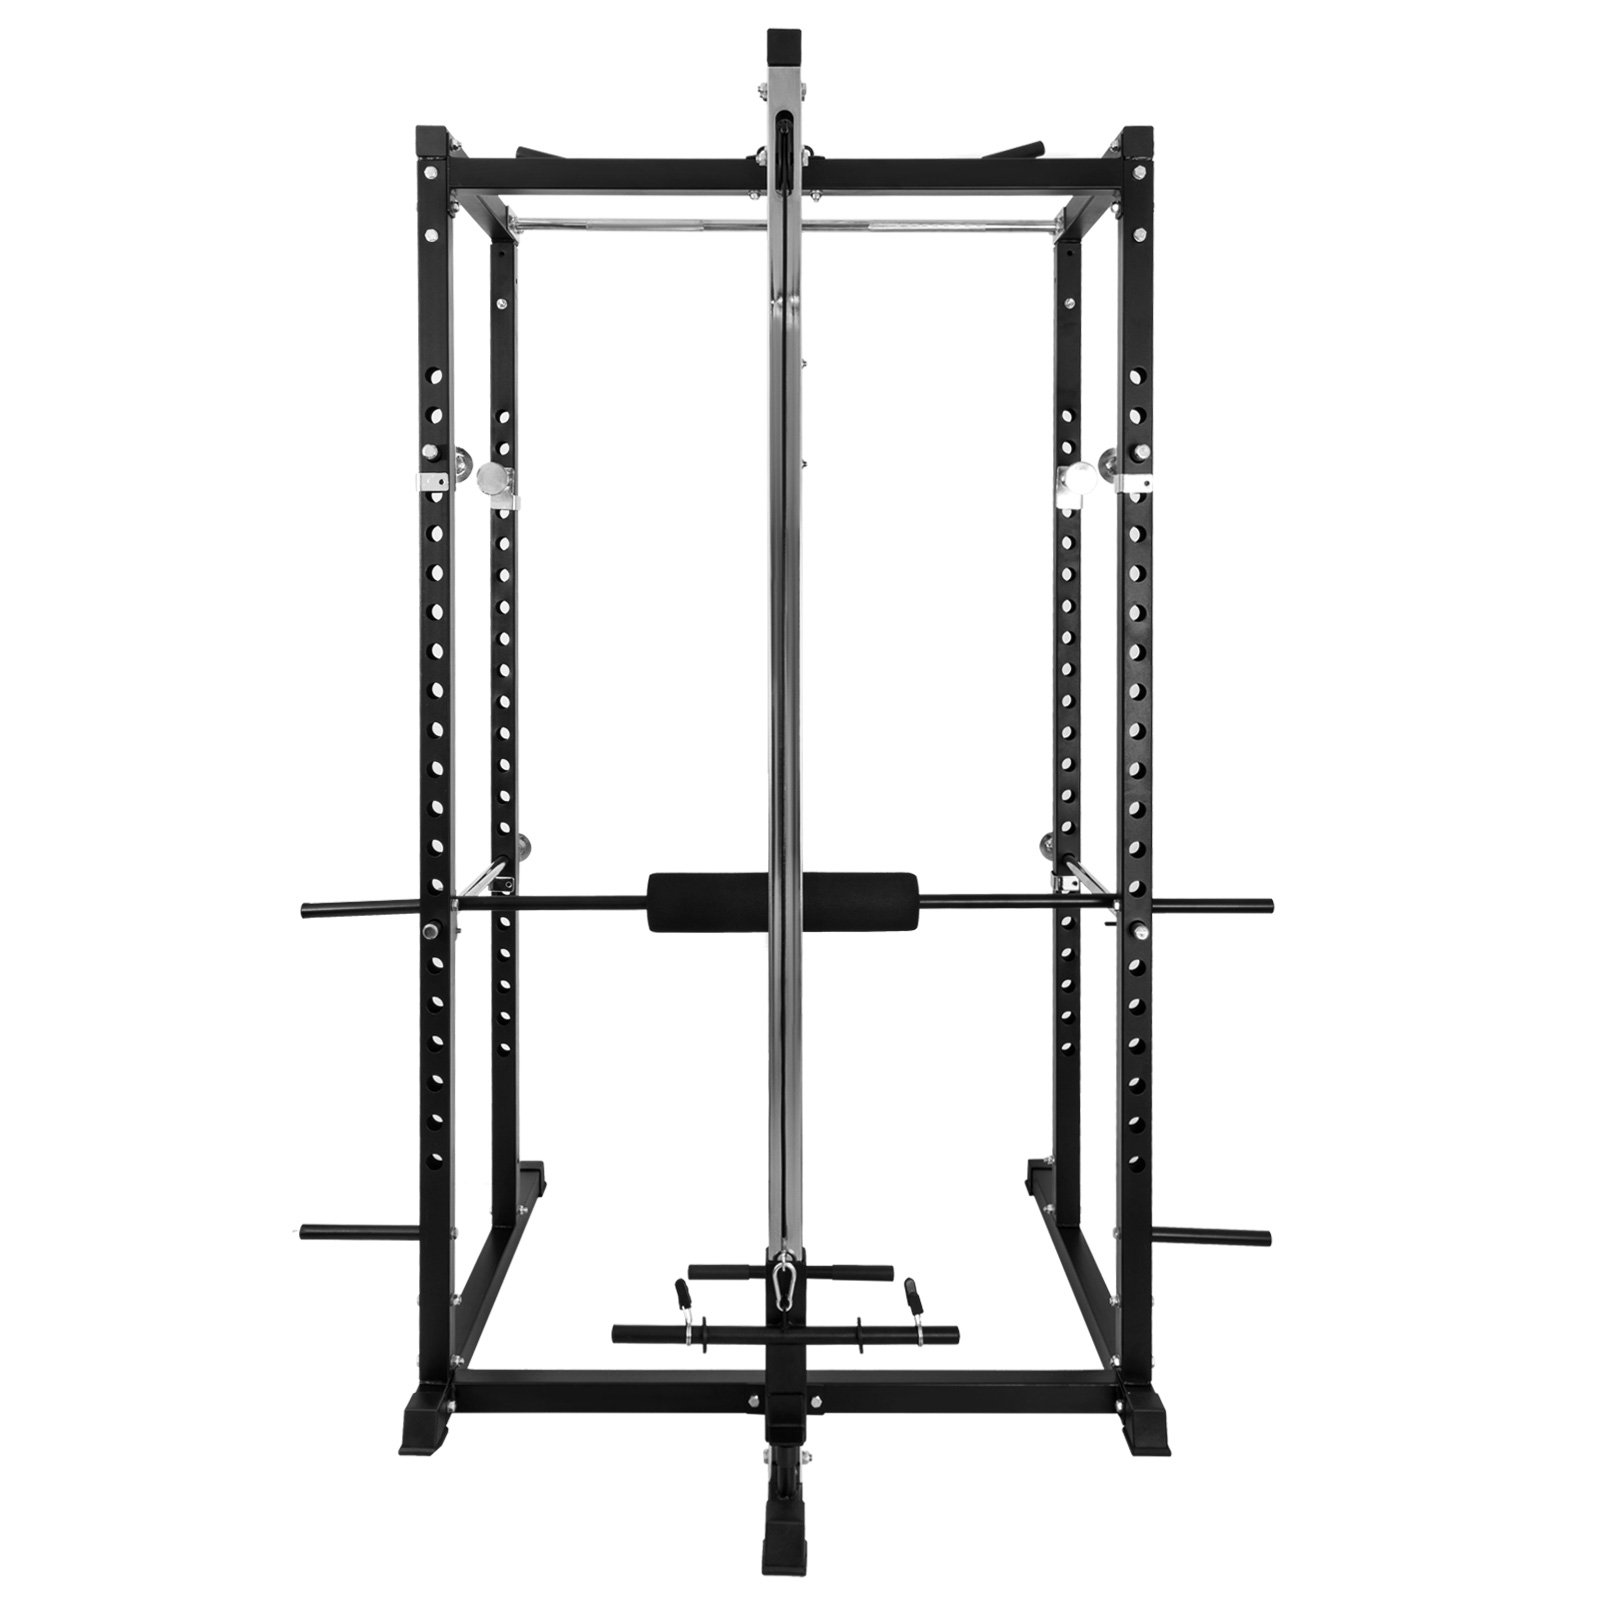 Happybuy Multi-Grip Chin-Up Fitness Power Rock Power Racks Weightlifting Power Rack Olympic Squat Cage Power Rack Cage System with Adjustable Bar for Home Gym (BD-7)